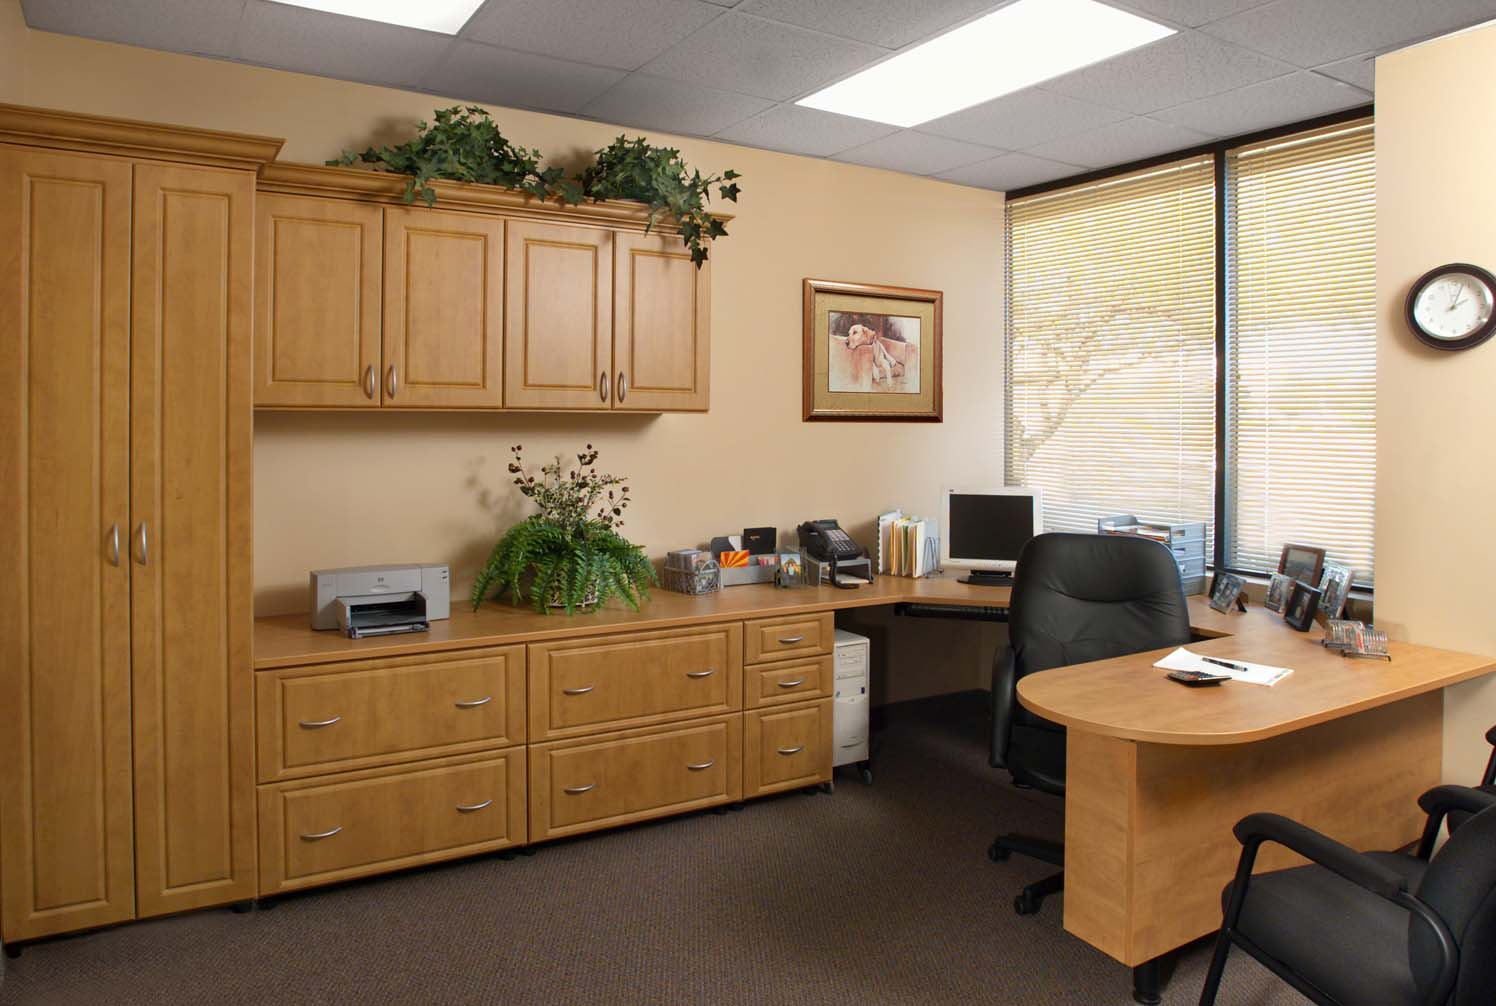 home office cabinets & office organization design in michigan